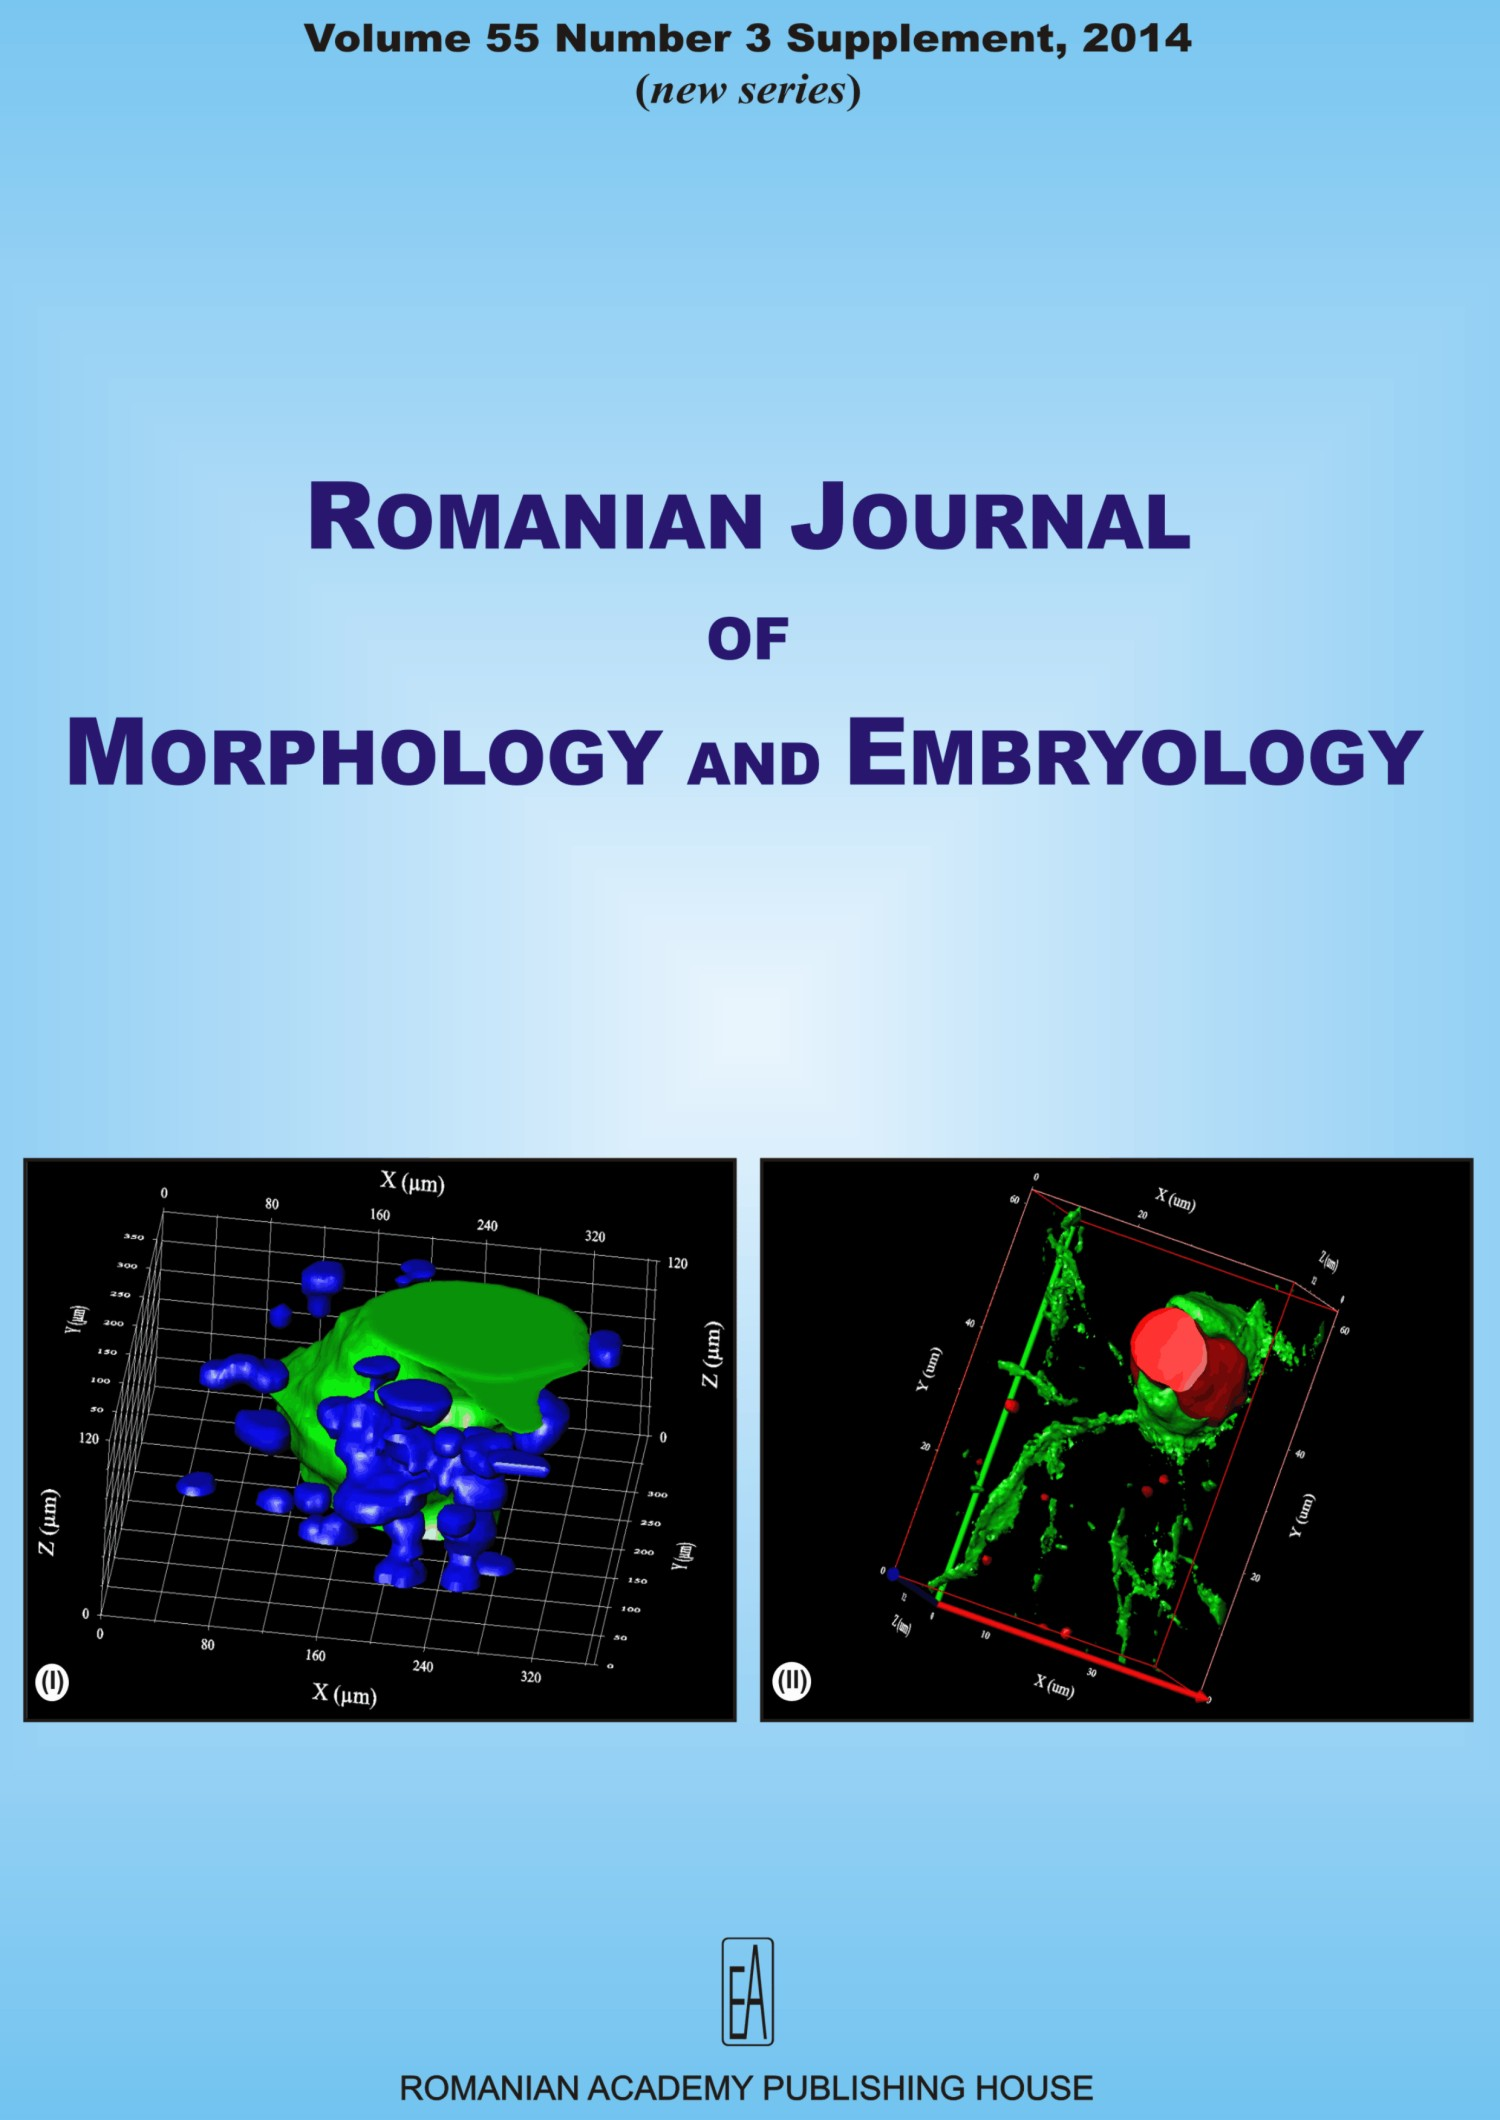 Romanian Journal of Morphology and Embryology, vol. 55 no. 3Suppl, 2014